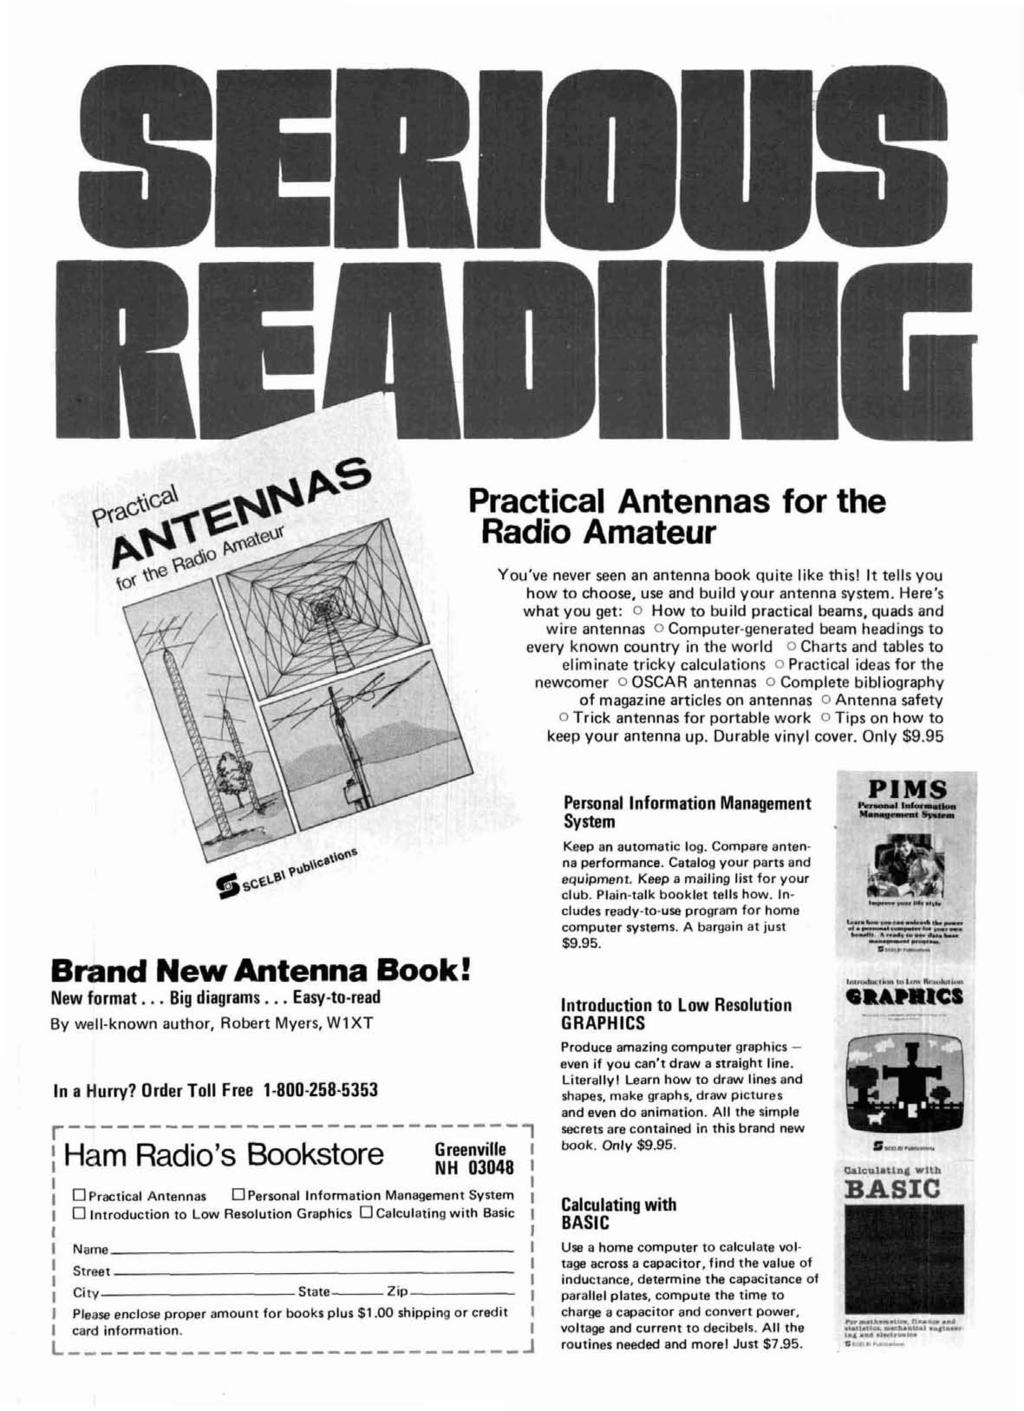 Practical Antennas for the Radio Amateur You've never seen an antenna book quite like thisl It tells you how to choose, use and build your antenna system.